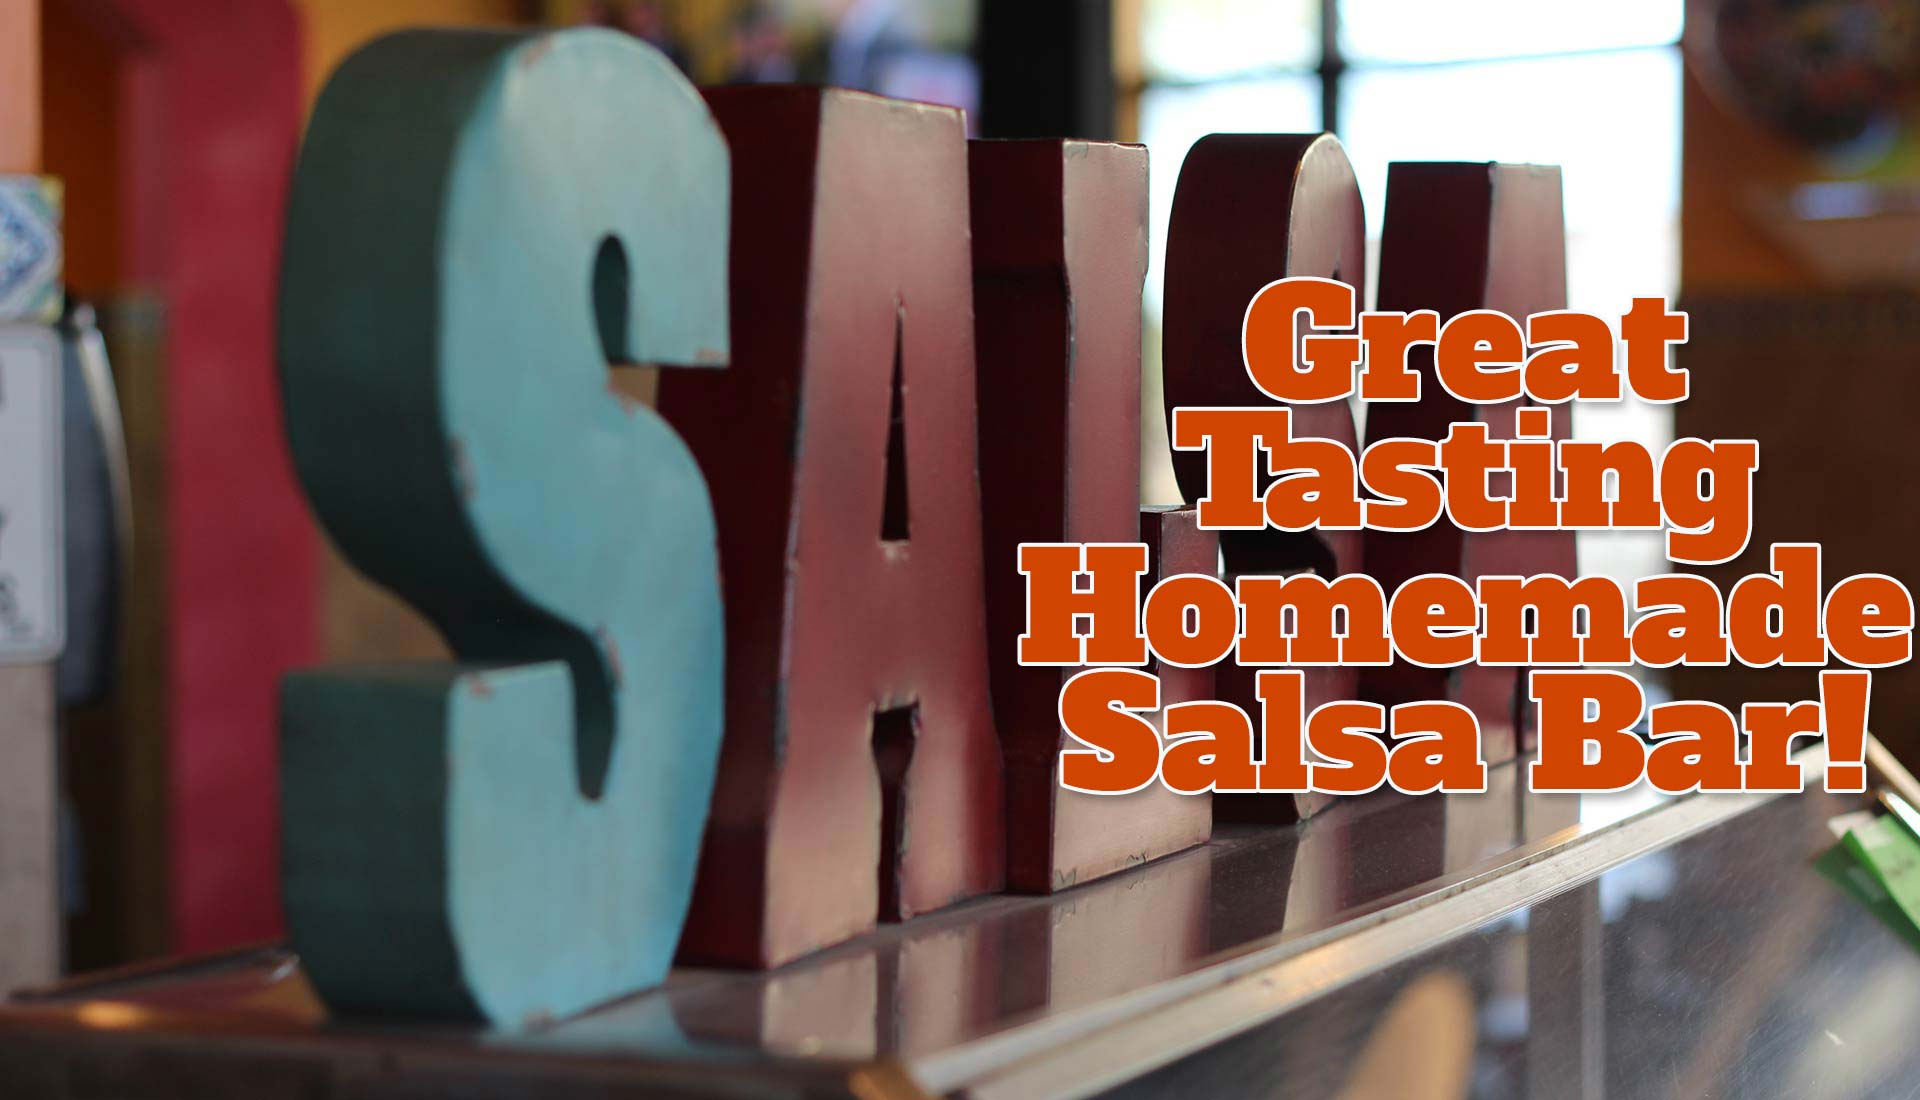 Salsa Bar Small